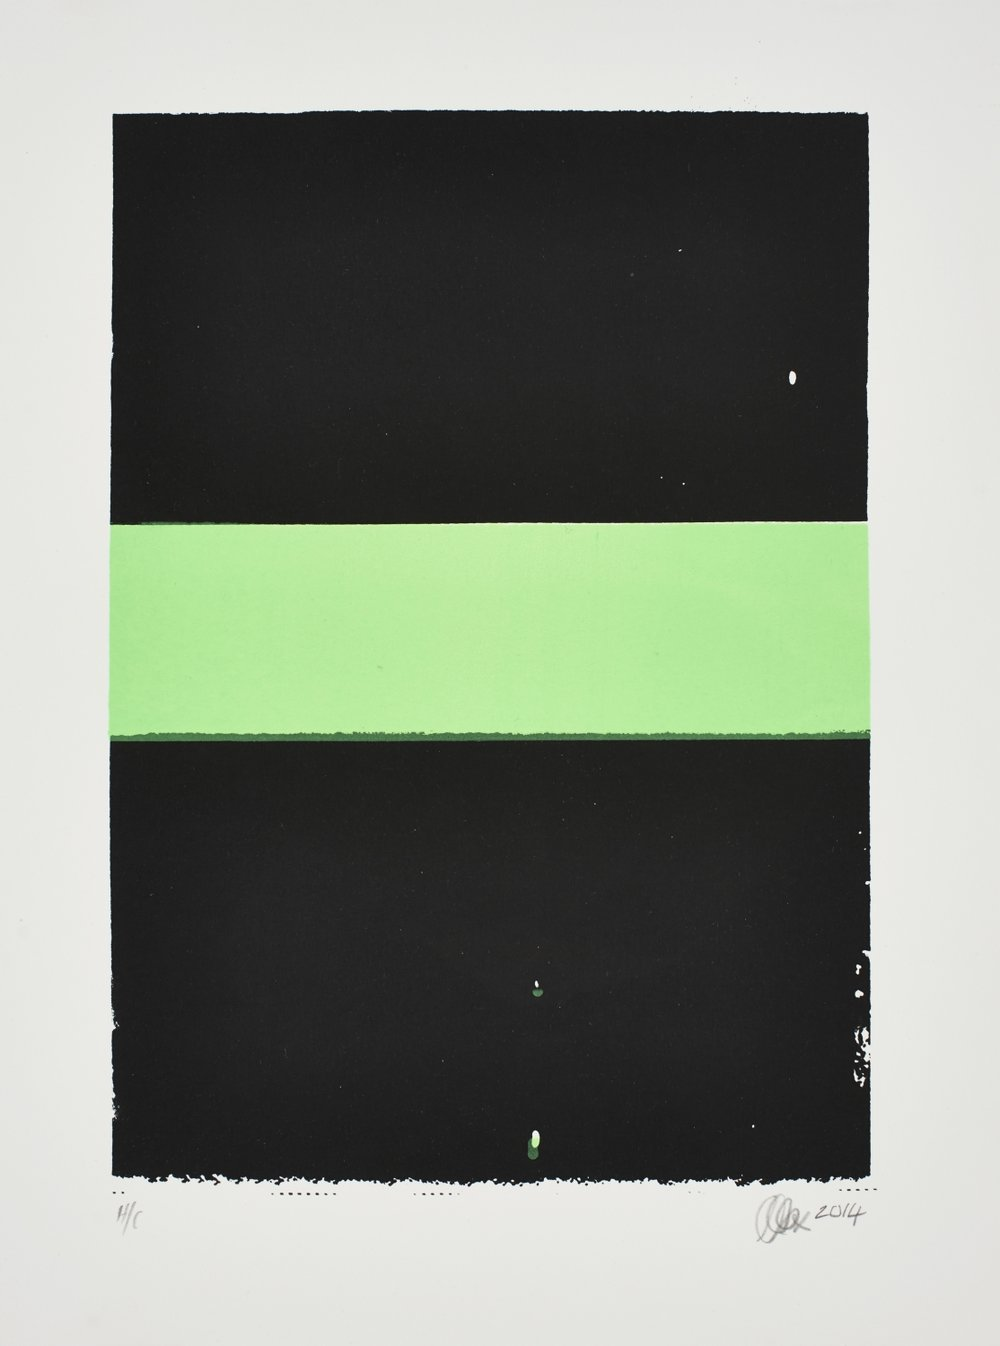 Untitled   MJ Turpin  Silkscreen on paper  Edition of 44  R 3 200.00 excl. vat